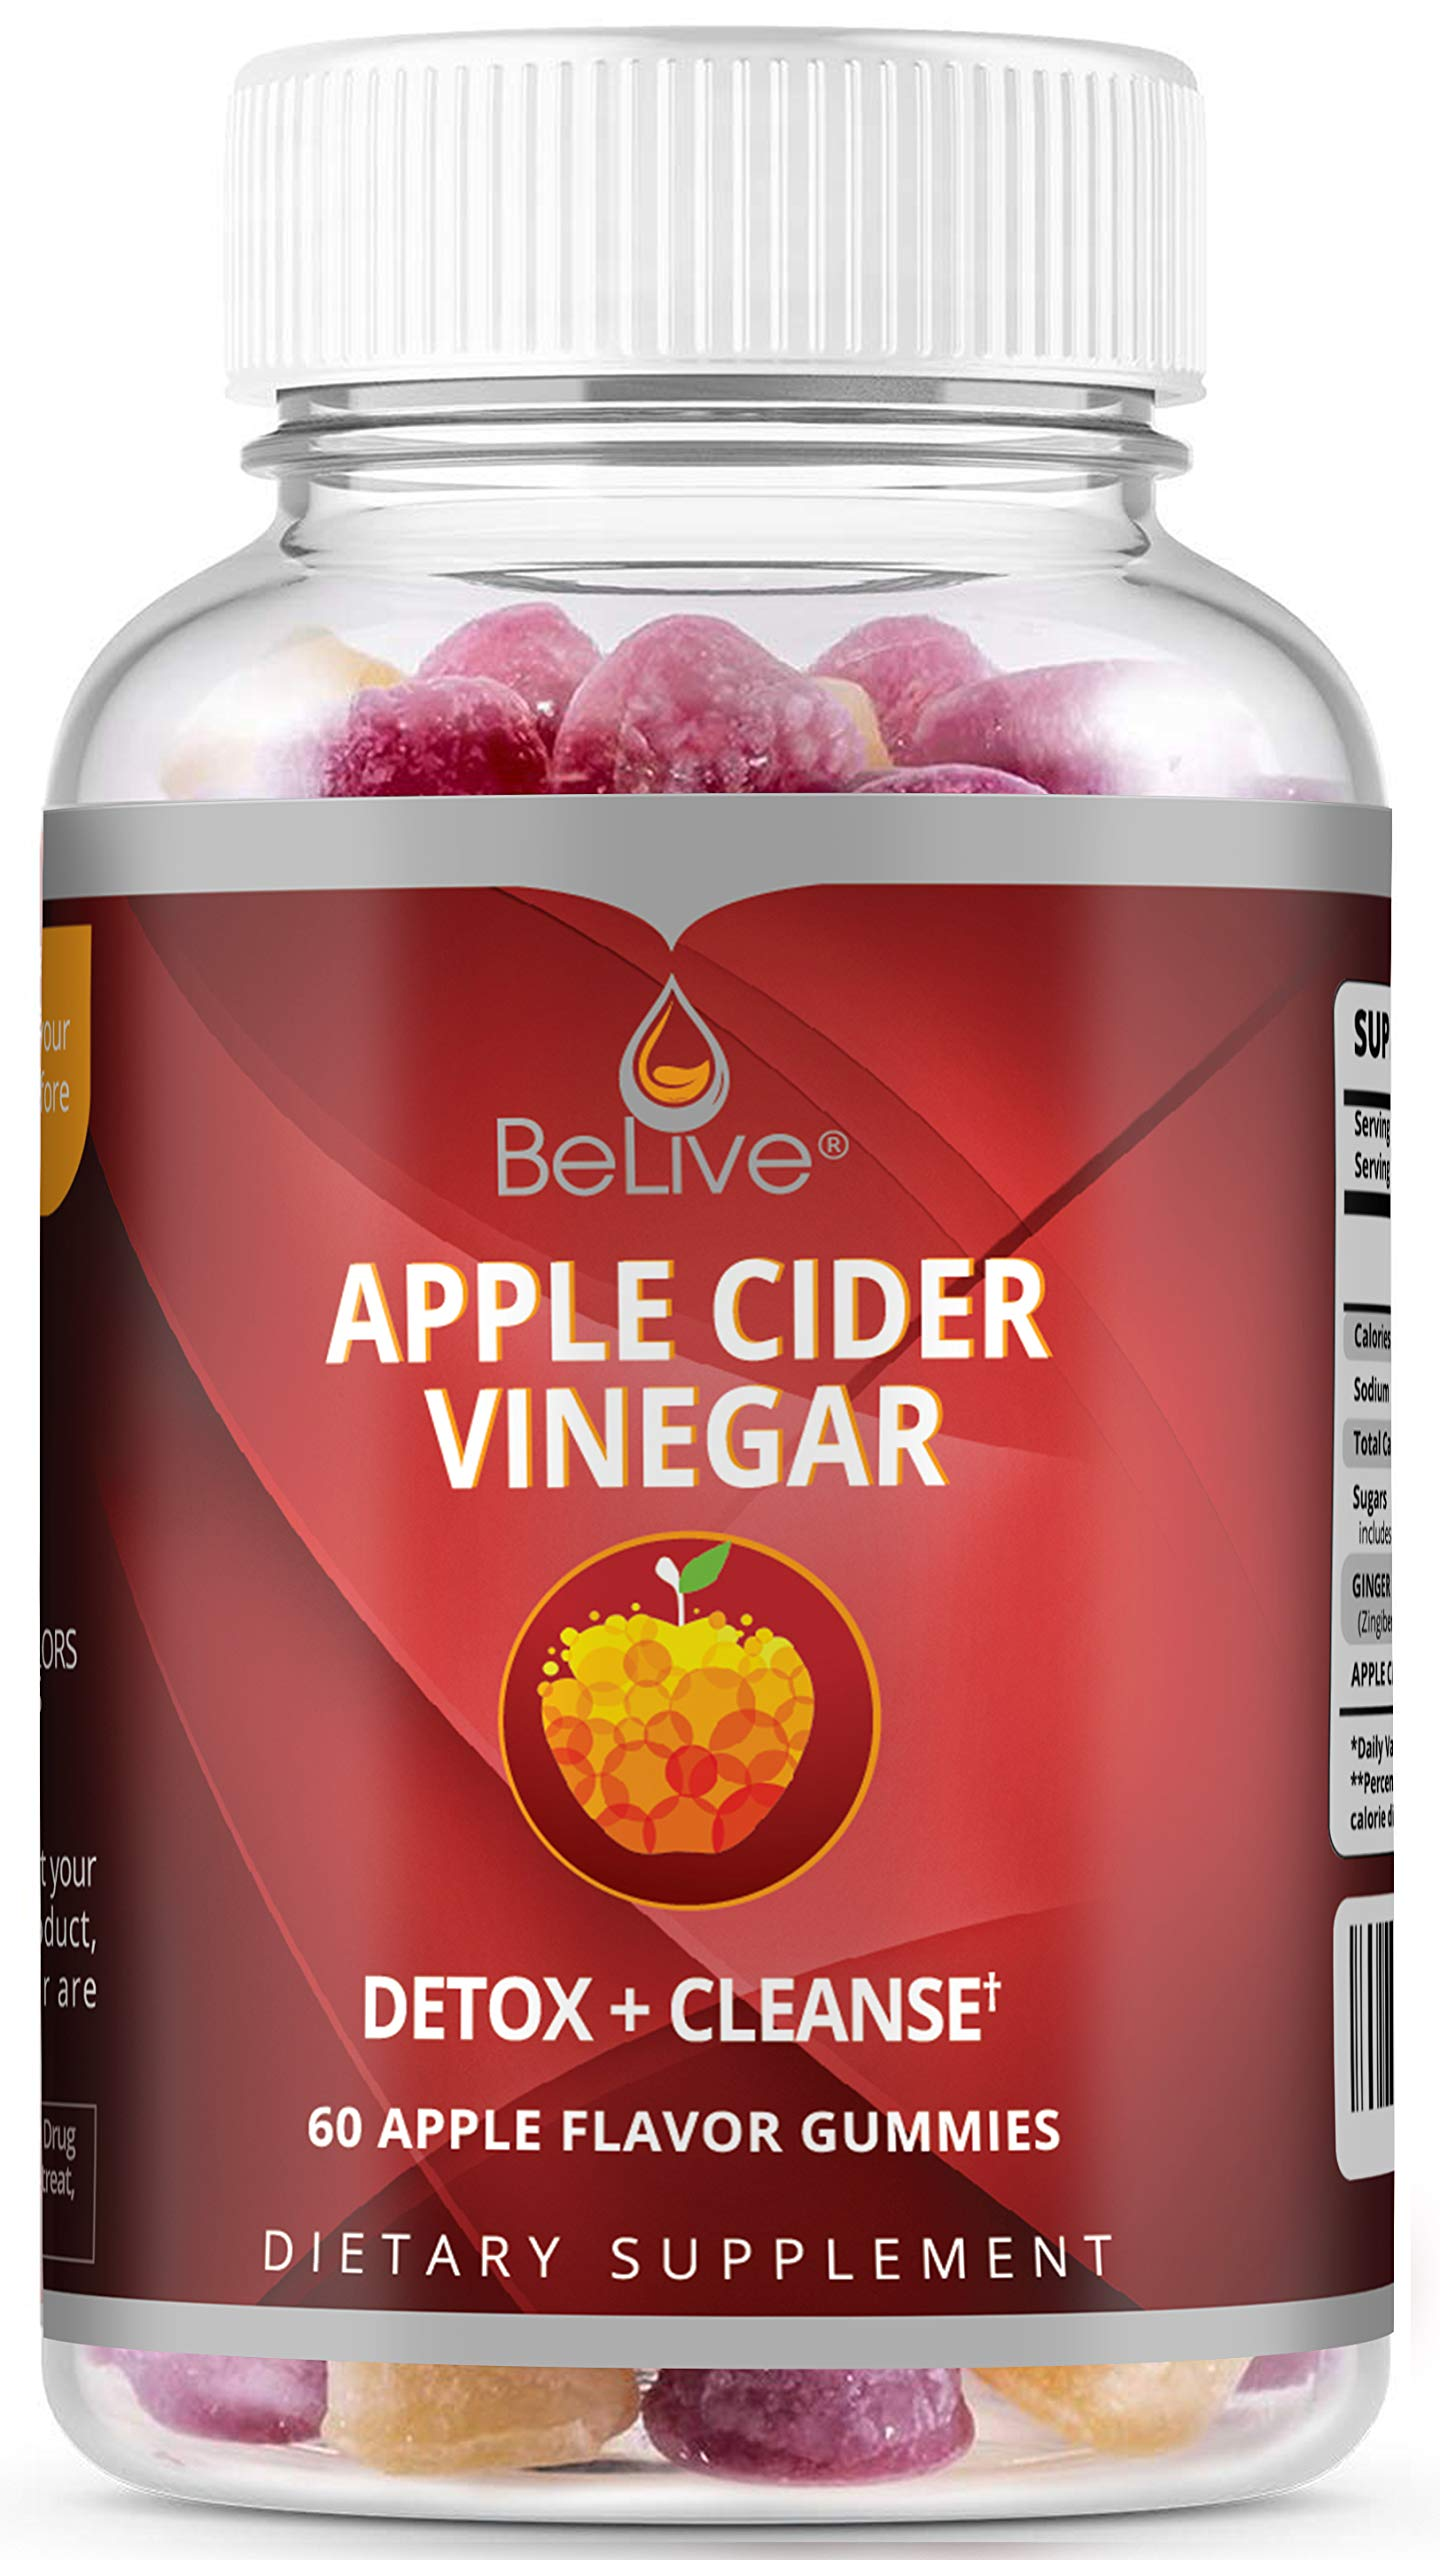 BeLive Apple Cider Vinegar and Ginger Gummies - Detox, Cleanse, Bloating Relief & Appetite Suppressant for Women, Men, and Kids | Natural & Raw - 60 Gummies